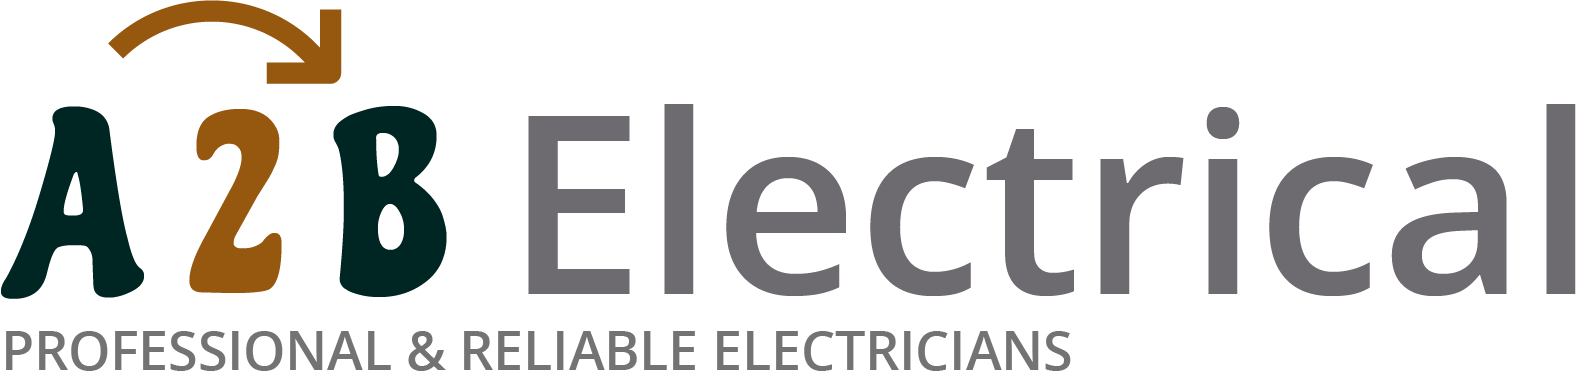 If you have electrical wiring problems in Walworth, we can provide an electrician to have a look for you.